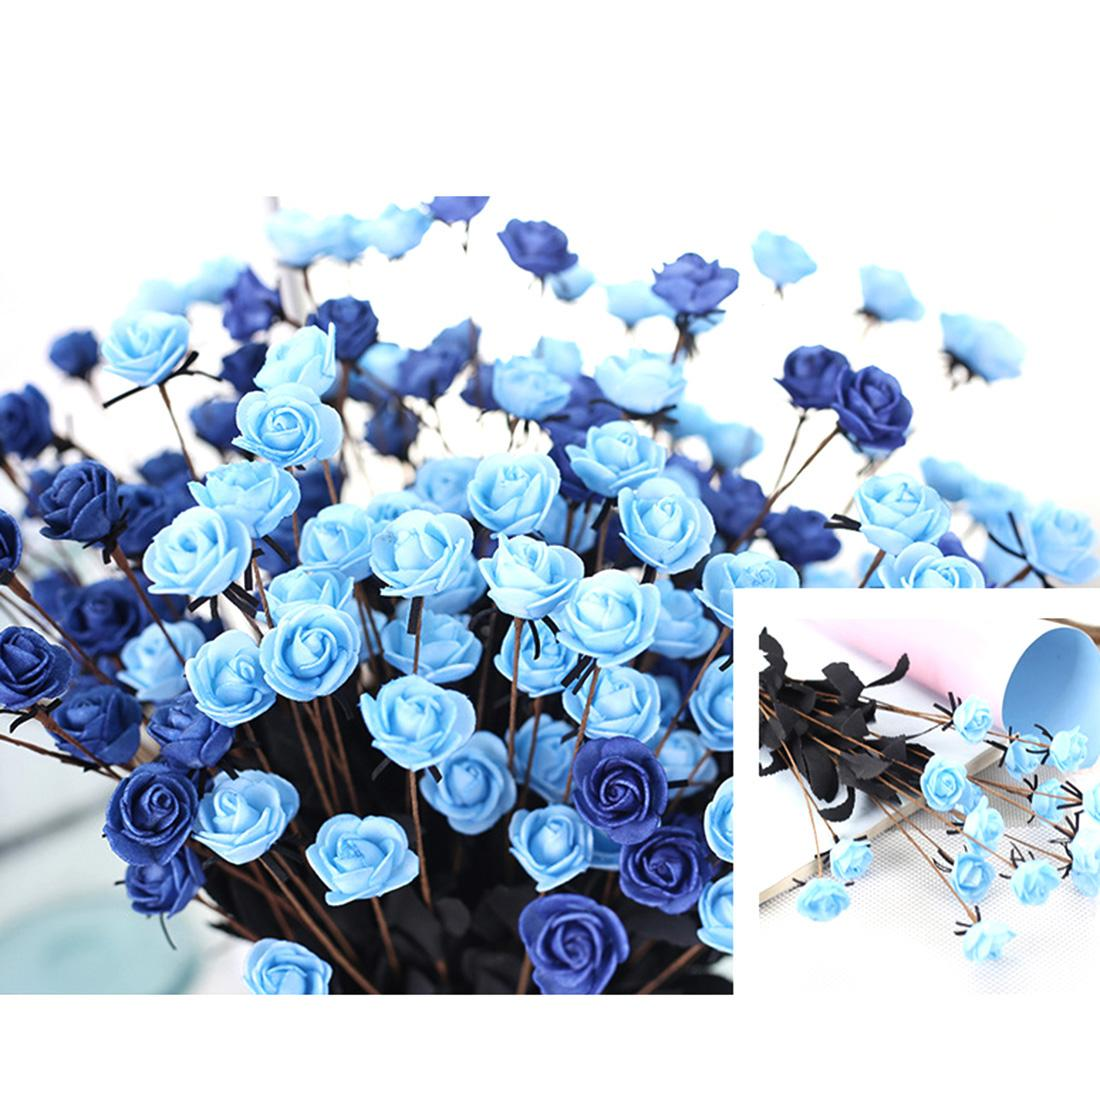 2018 Hot Sell 1 Bouquet 15 Heads Artificial Flower Simulation Rose